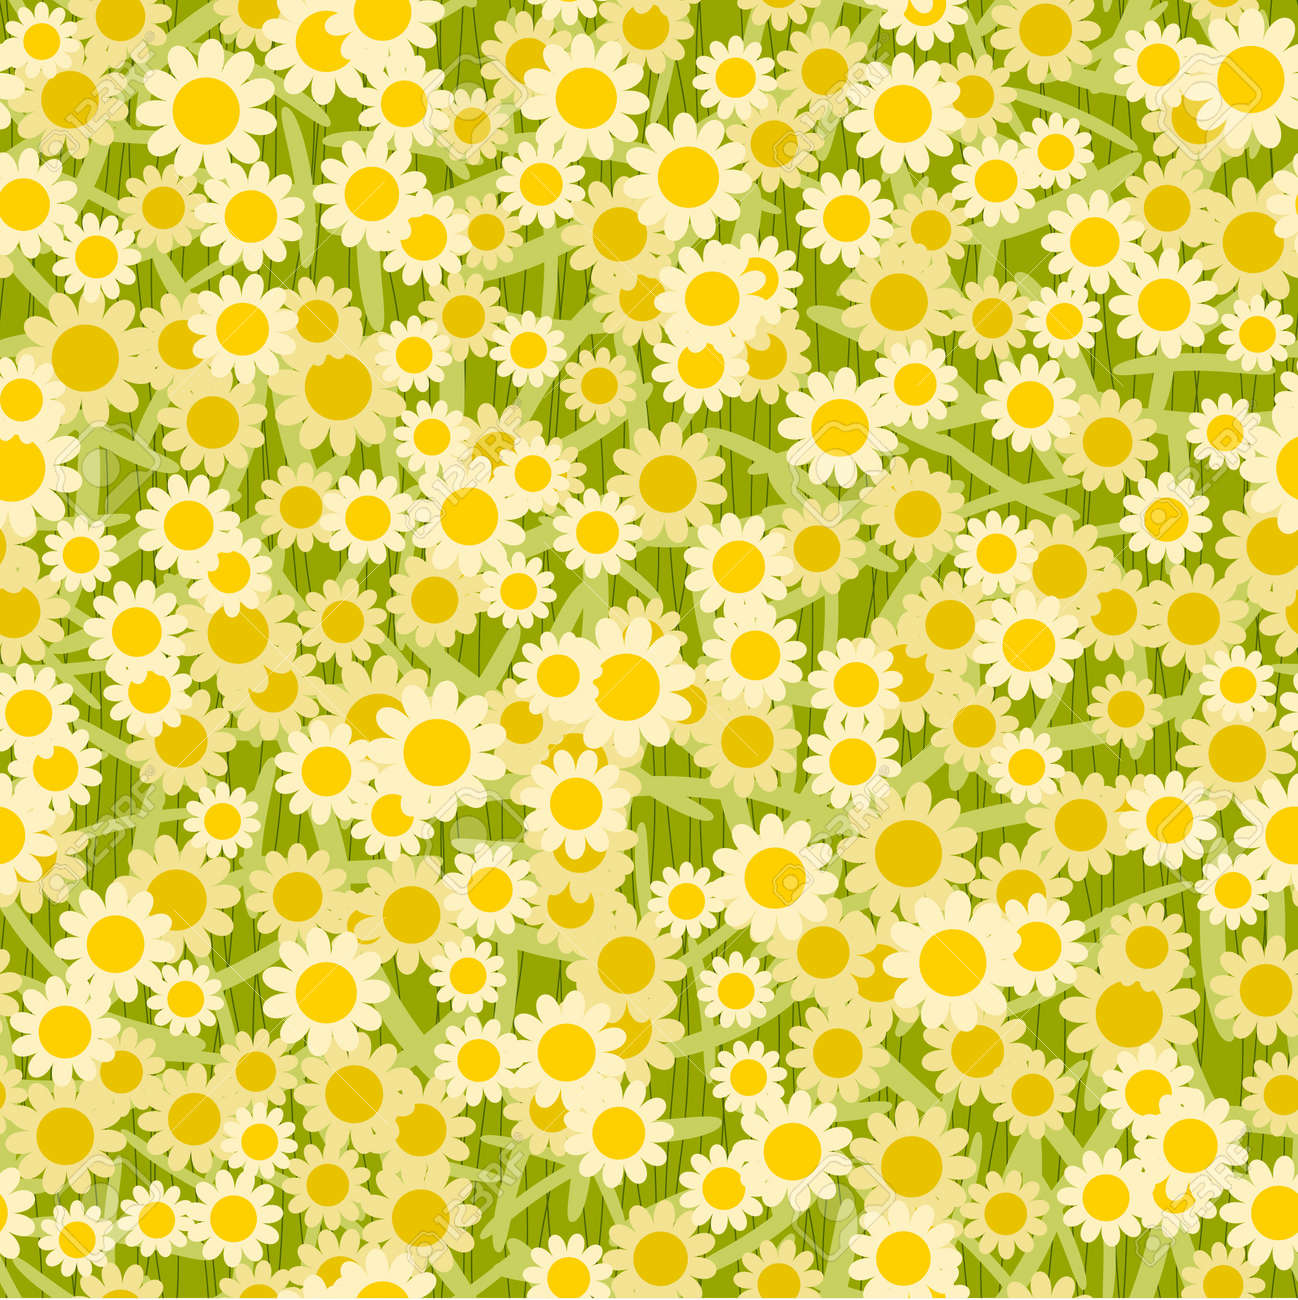 yellow white flowers seamless background pattern Stock Vector - 16557339